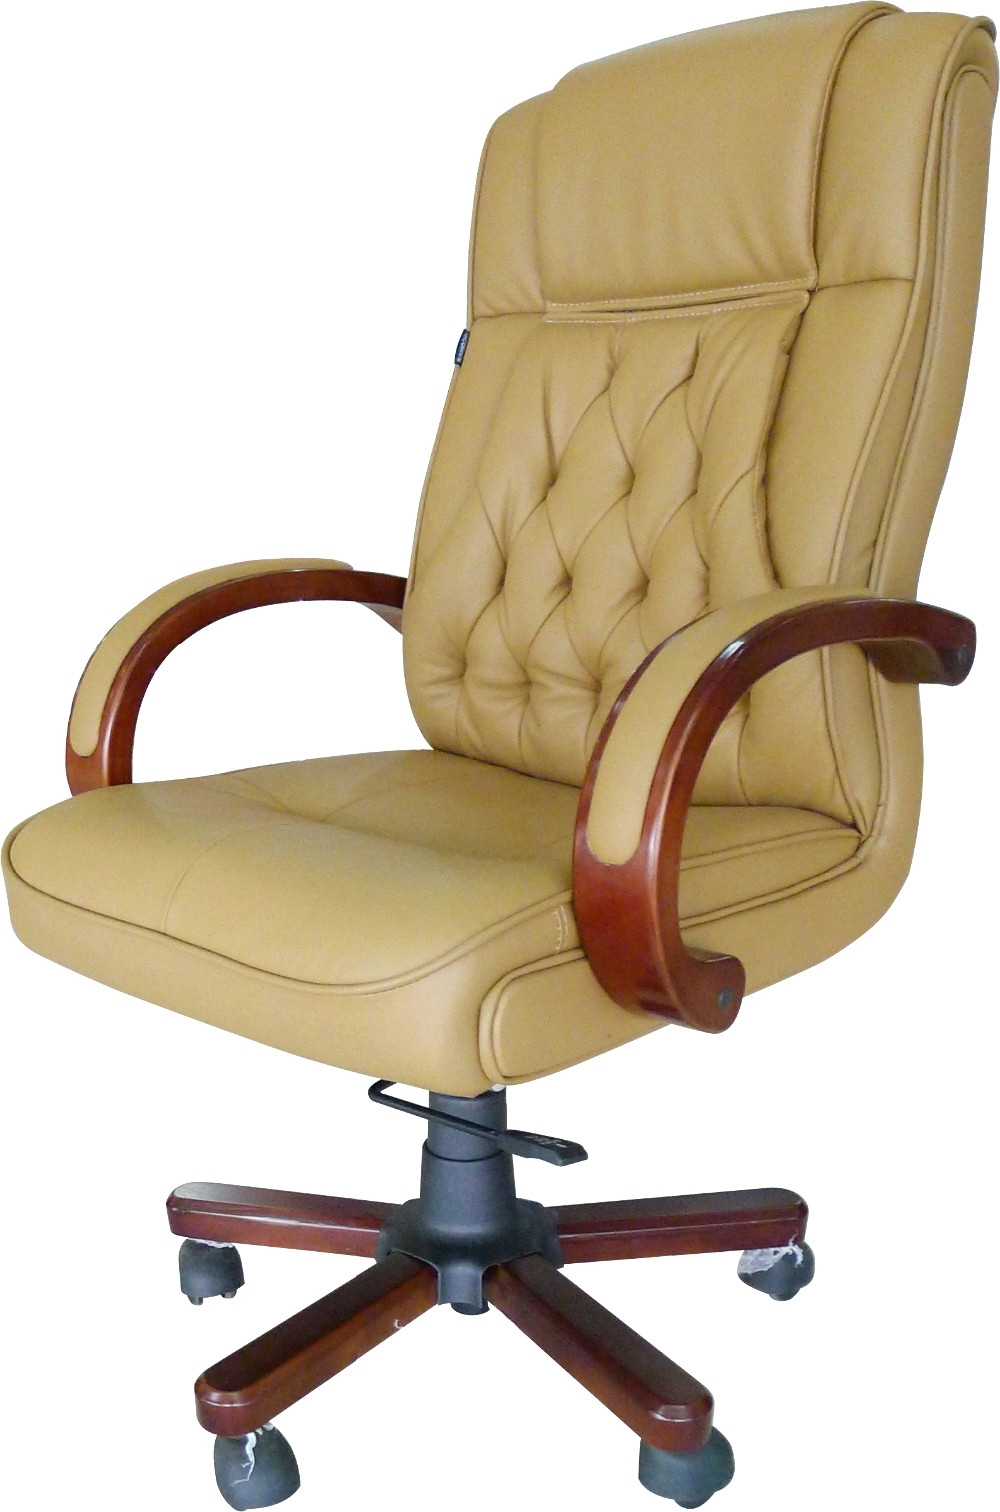 Preferred Chaise Lounge Computer Chairs Pertaining To Chaise Lounge Computer Chair • Lounge Chairs Ideas (View 11 of 15)